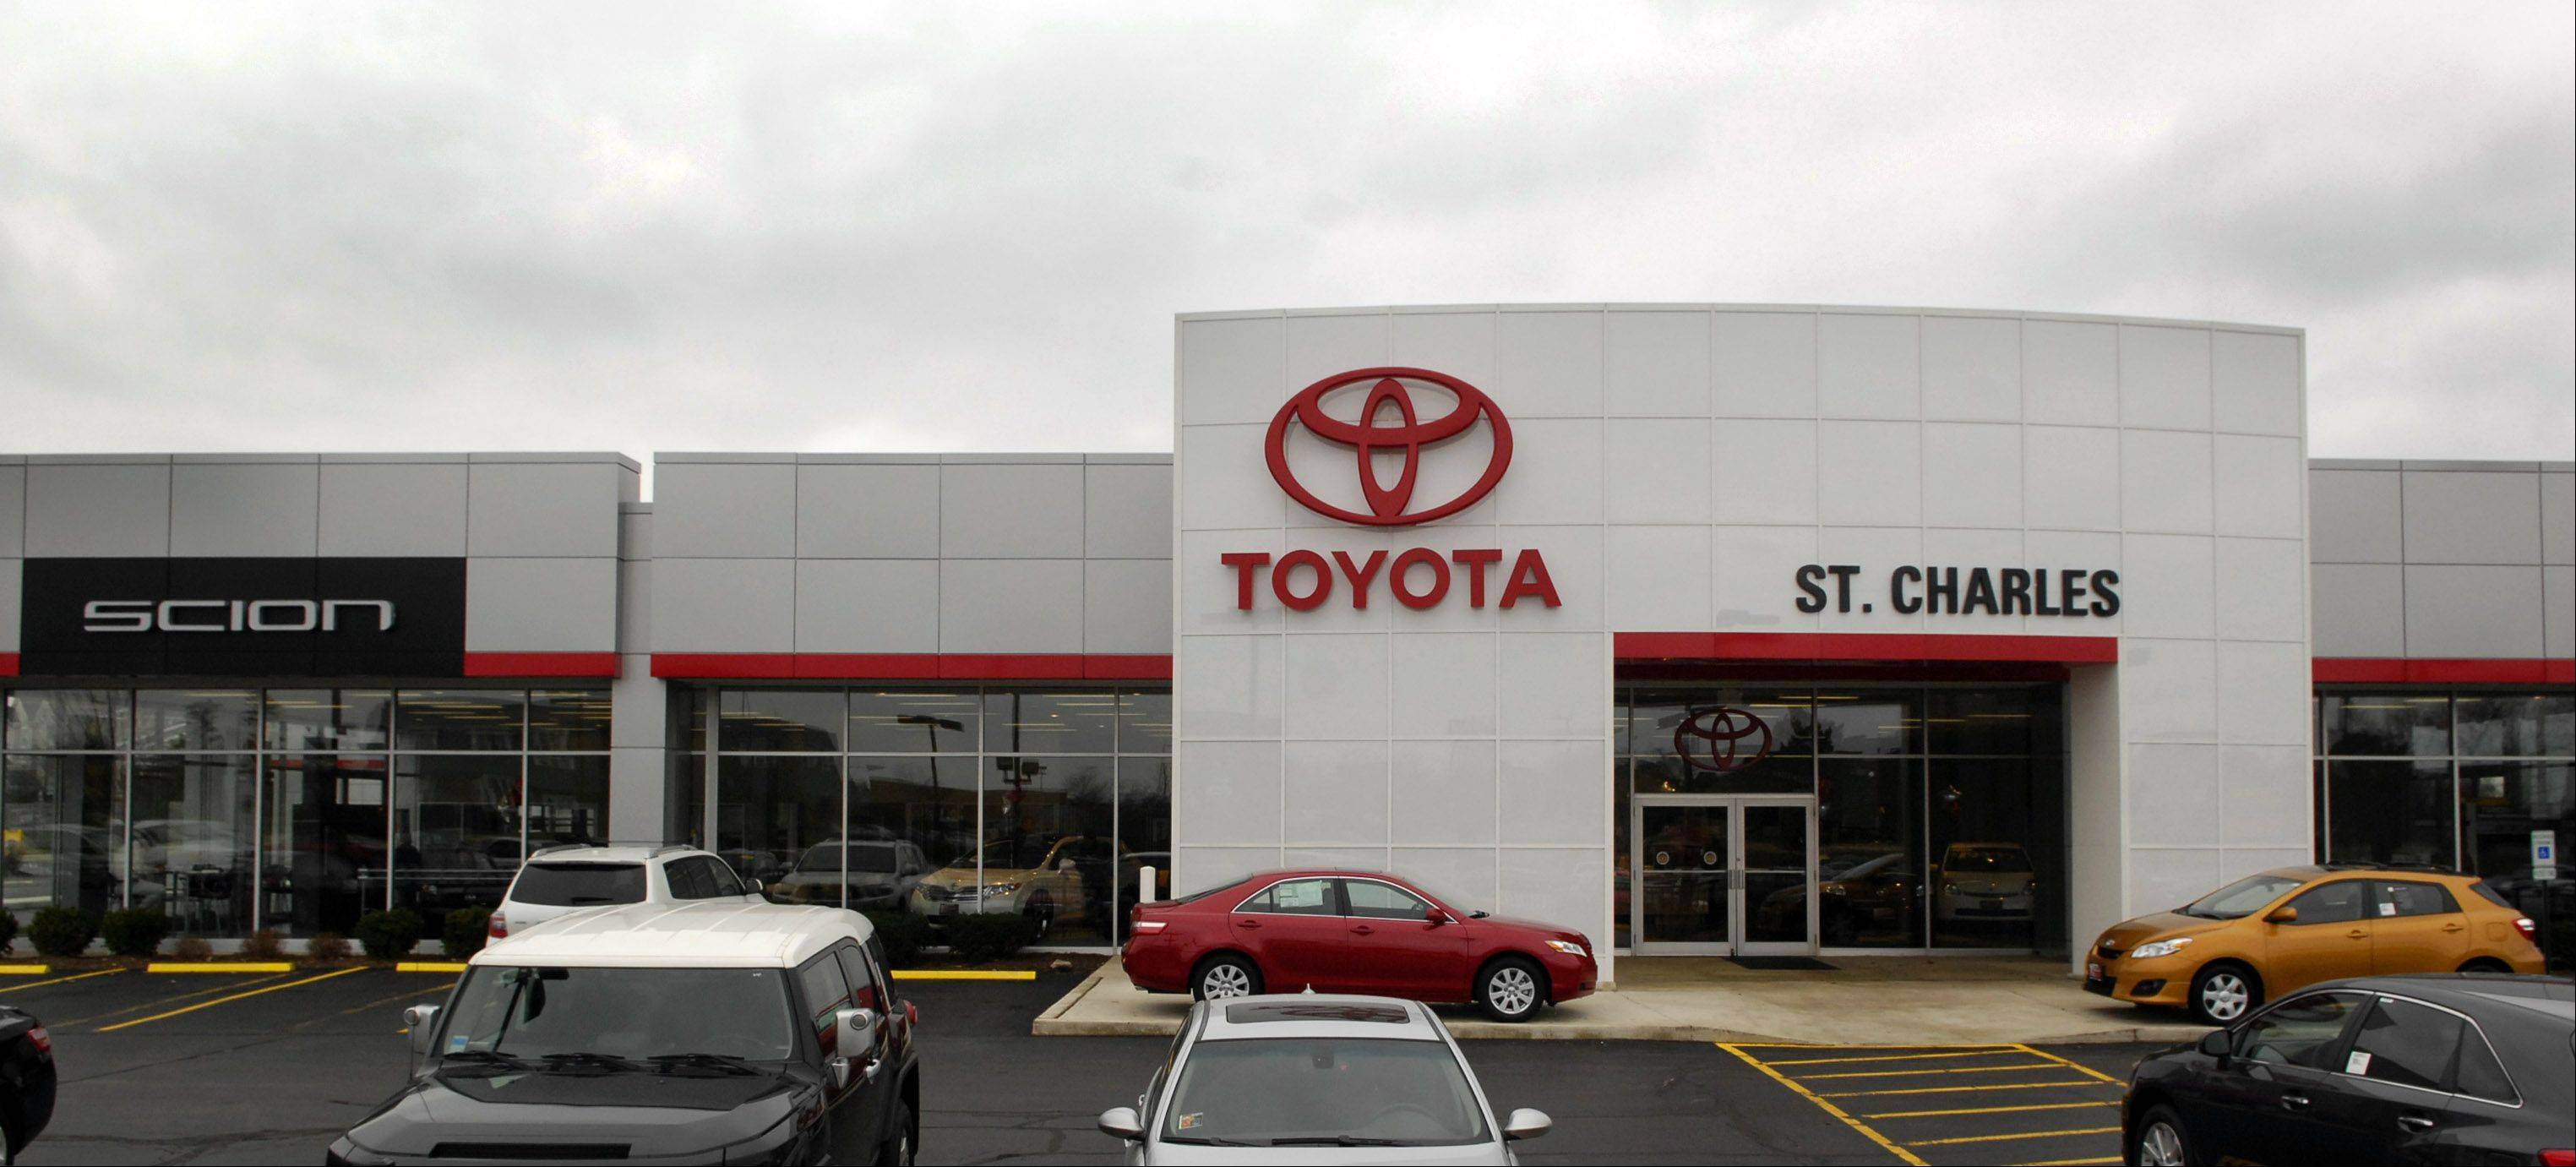 St. Charles leaders are considering a plan to return a portion of the sales tax revenues generated by a city Toyota dealership back to its owner, part of an effort to preserve the city's automobile sales industry.